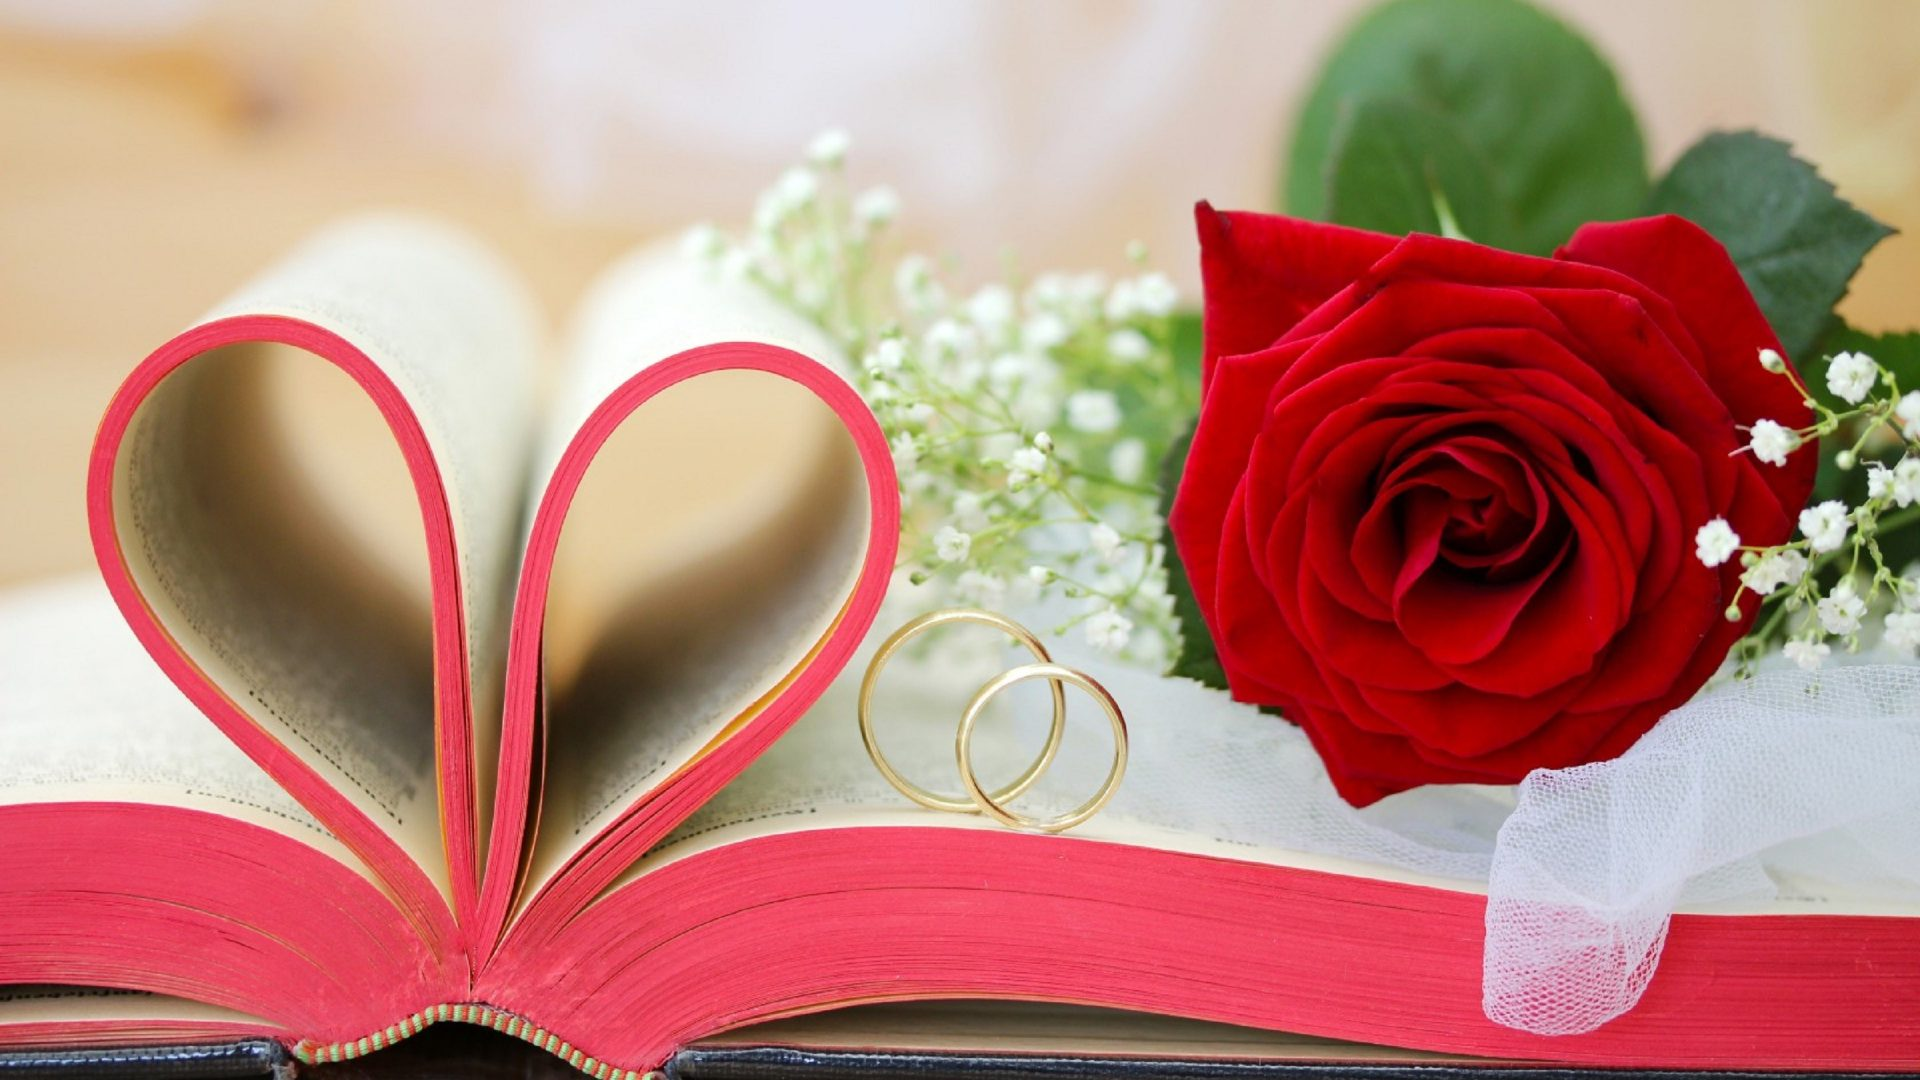 Book-Tag-Roses-Love-Still-Beauty-Heart-Colors-Lovely-Valentine-Seasons-Day-Rings-Creative-February-wallpaper-wpc5803011